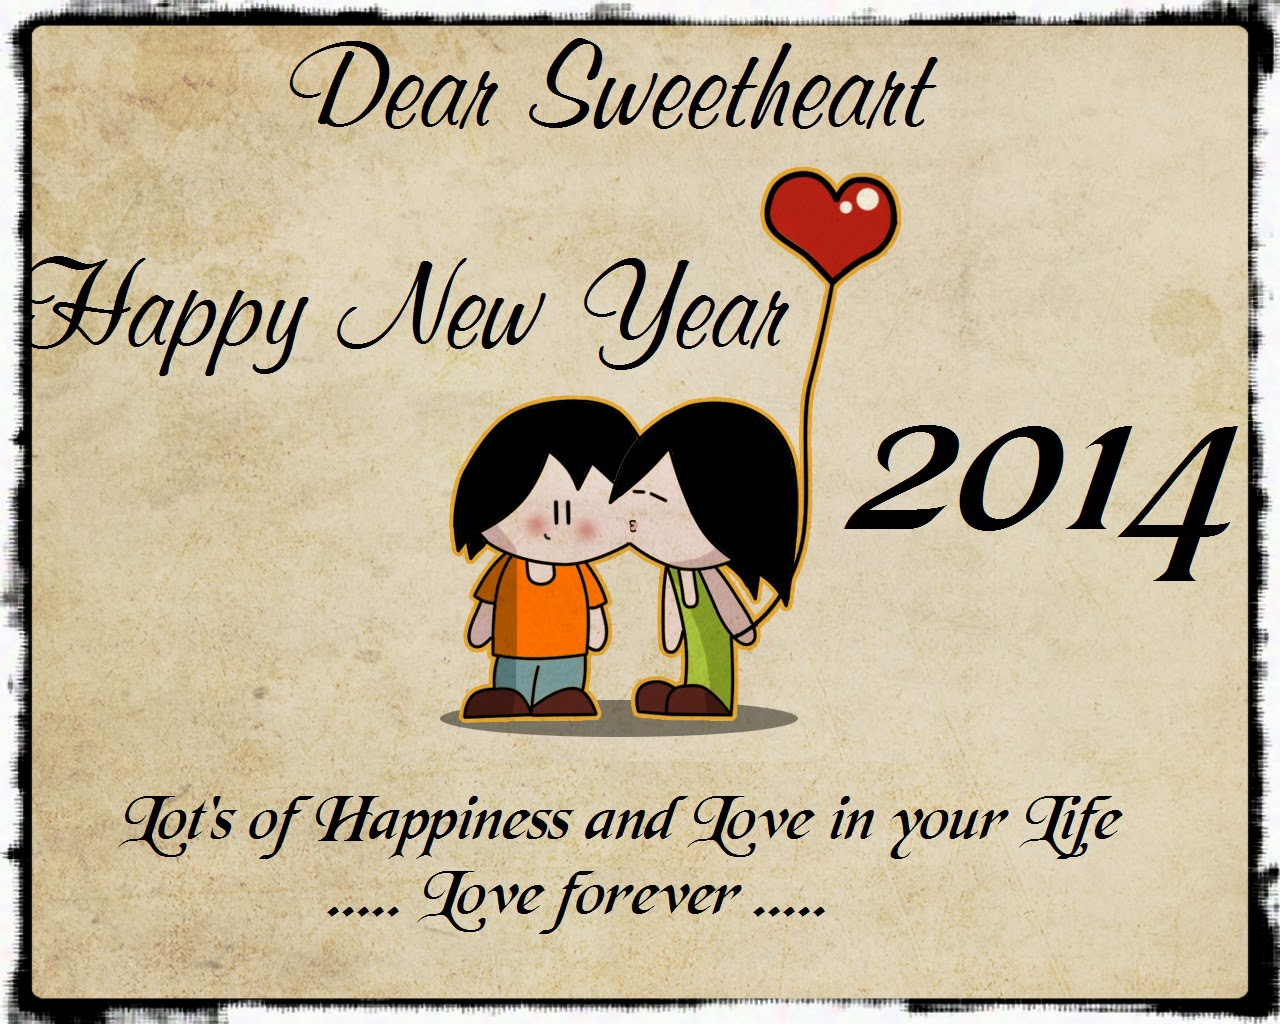 Funny Cartoons New Year 2014 HD Images Pictures. 1280 x 1024.Funny Happy New Year Gif